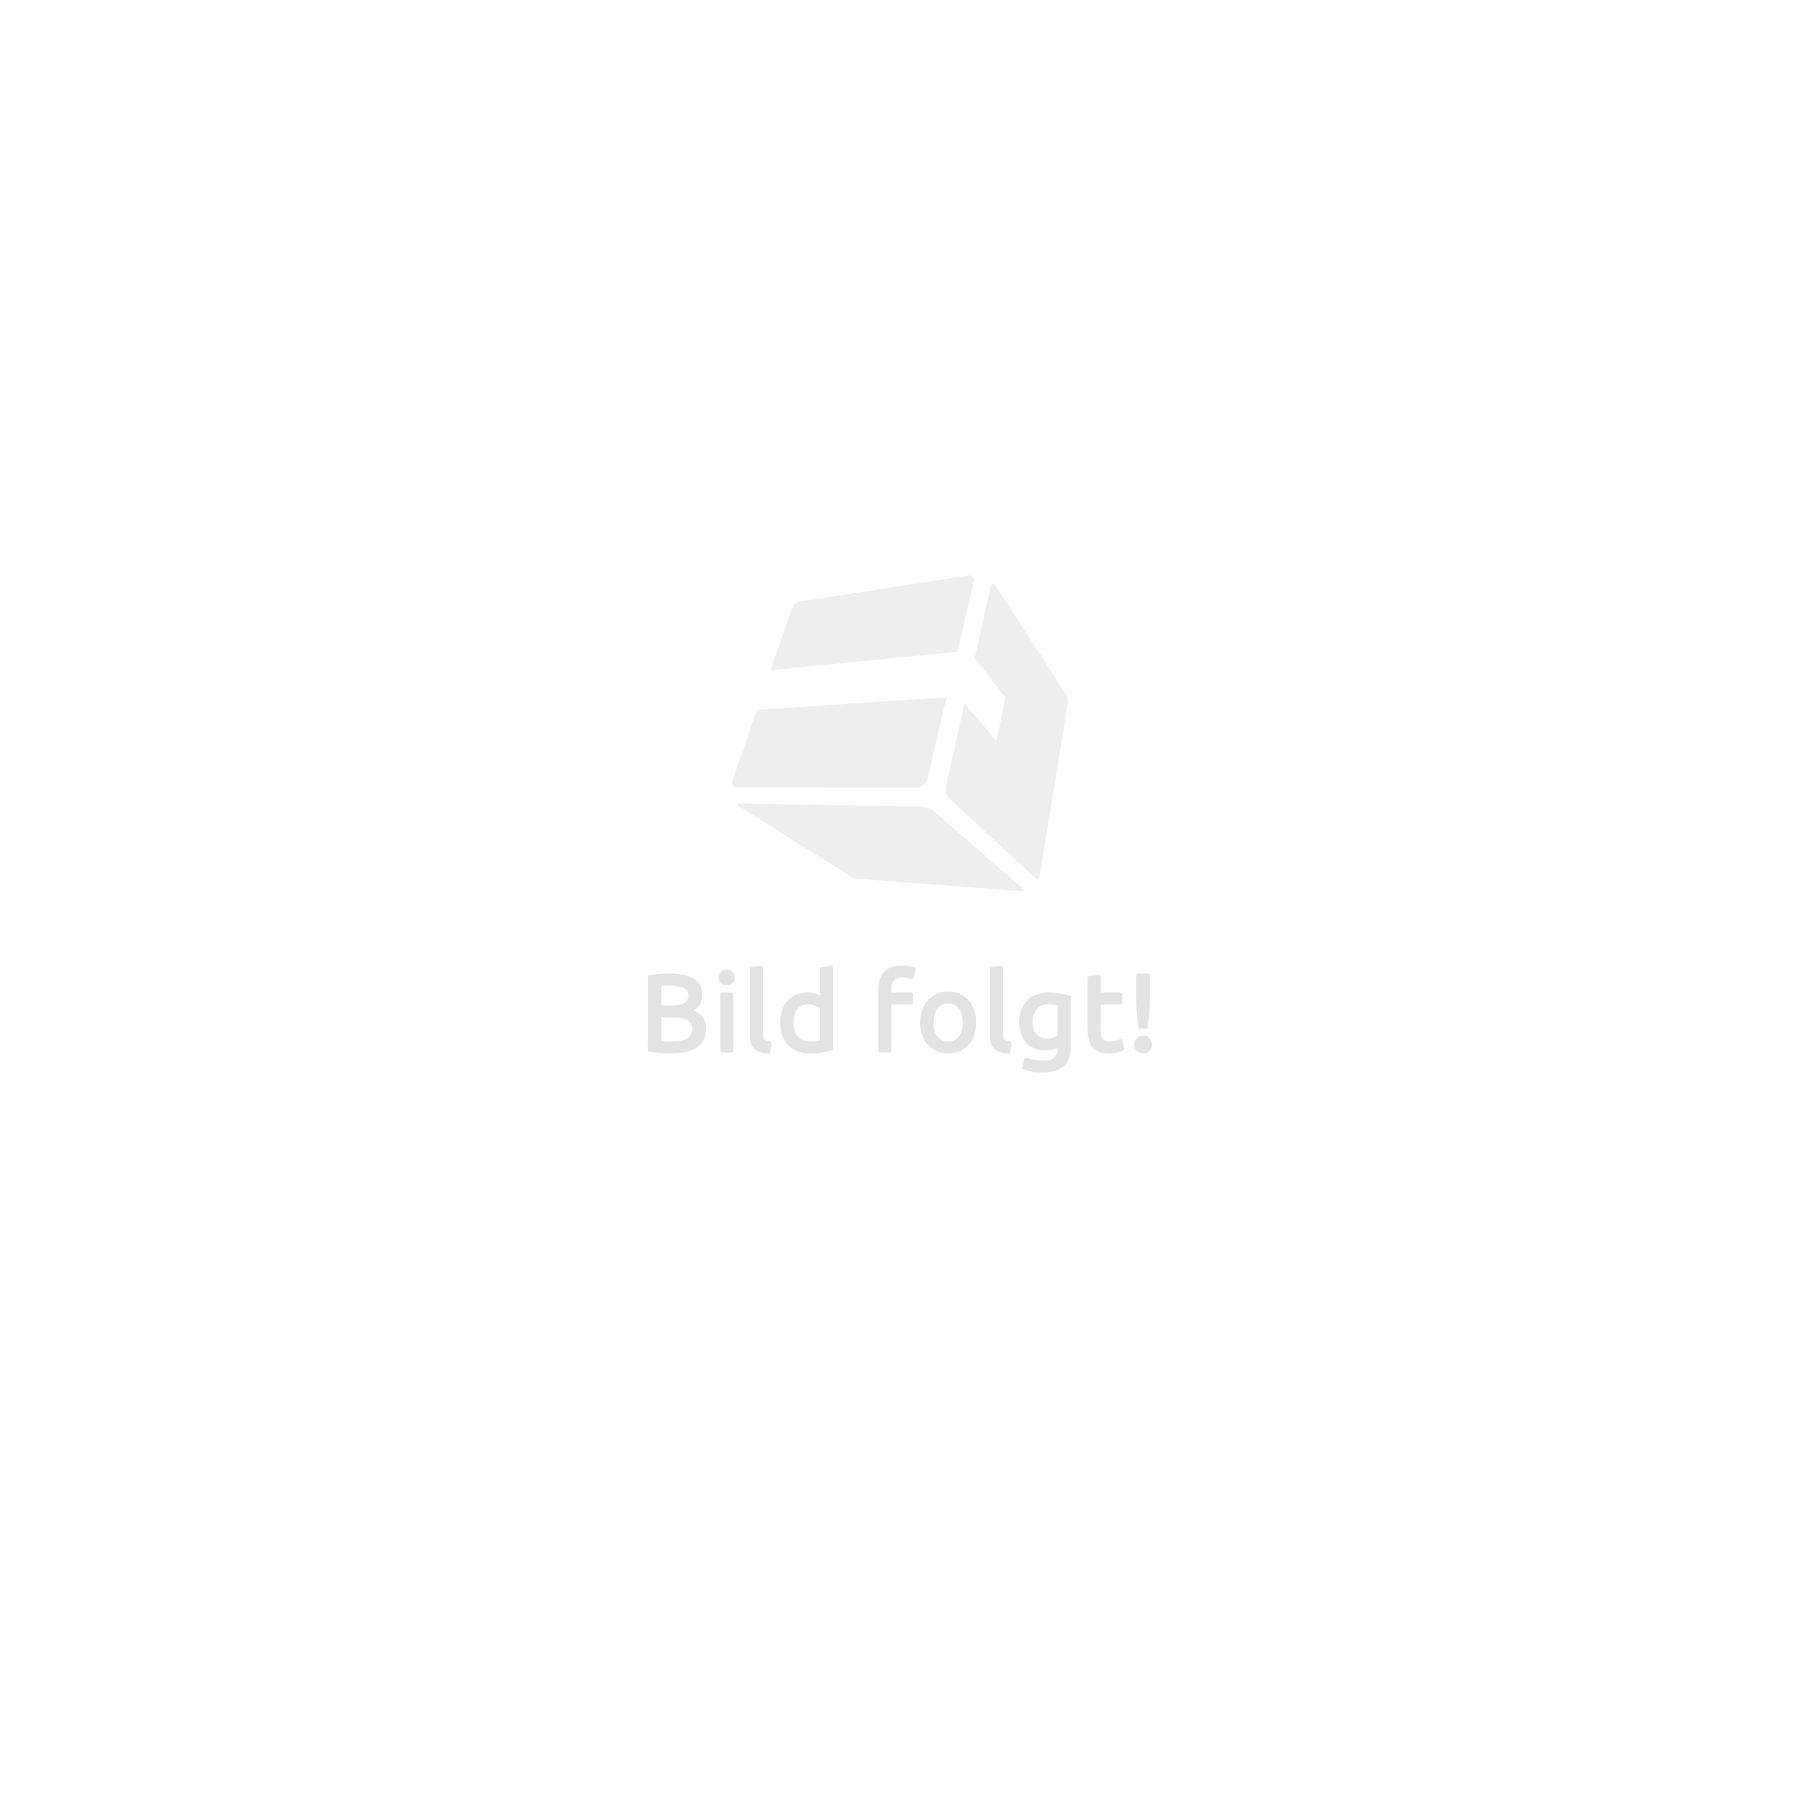 table de lit pliable pour pc portable notebook tablet bambou usb ventilateur ebay. Black Bedroom Furniture Sets. Home Design Ideas